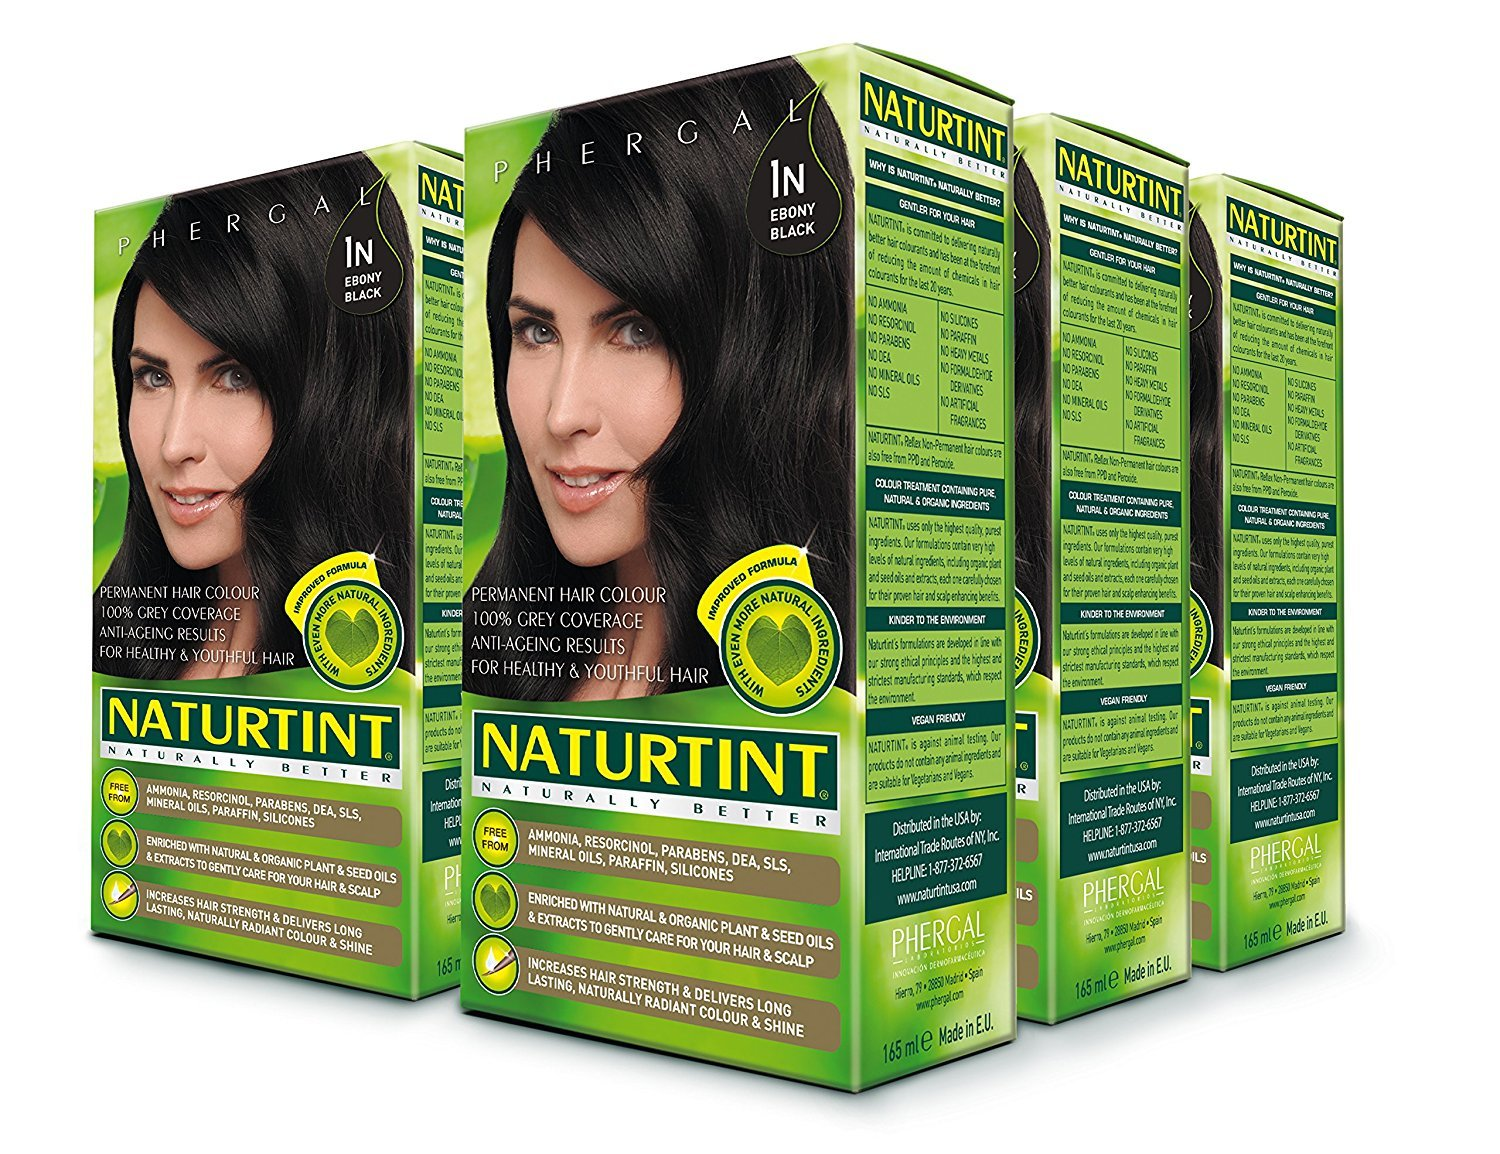 Amazon Com Naturtint Permanent Hair Color 1n Ebony Black Pack Of 6 Ammonia Free Vegan Cruelty Free Up To 100 Gray Coverage Long Lasting Results Chemical Hair Dyes Beauty